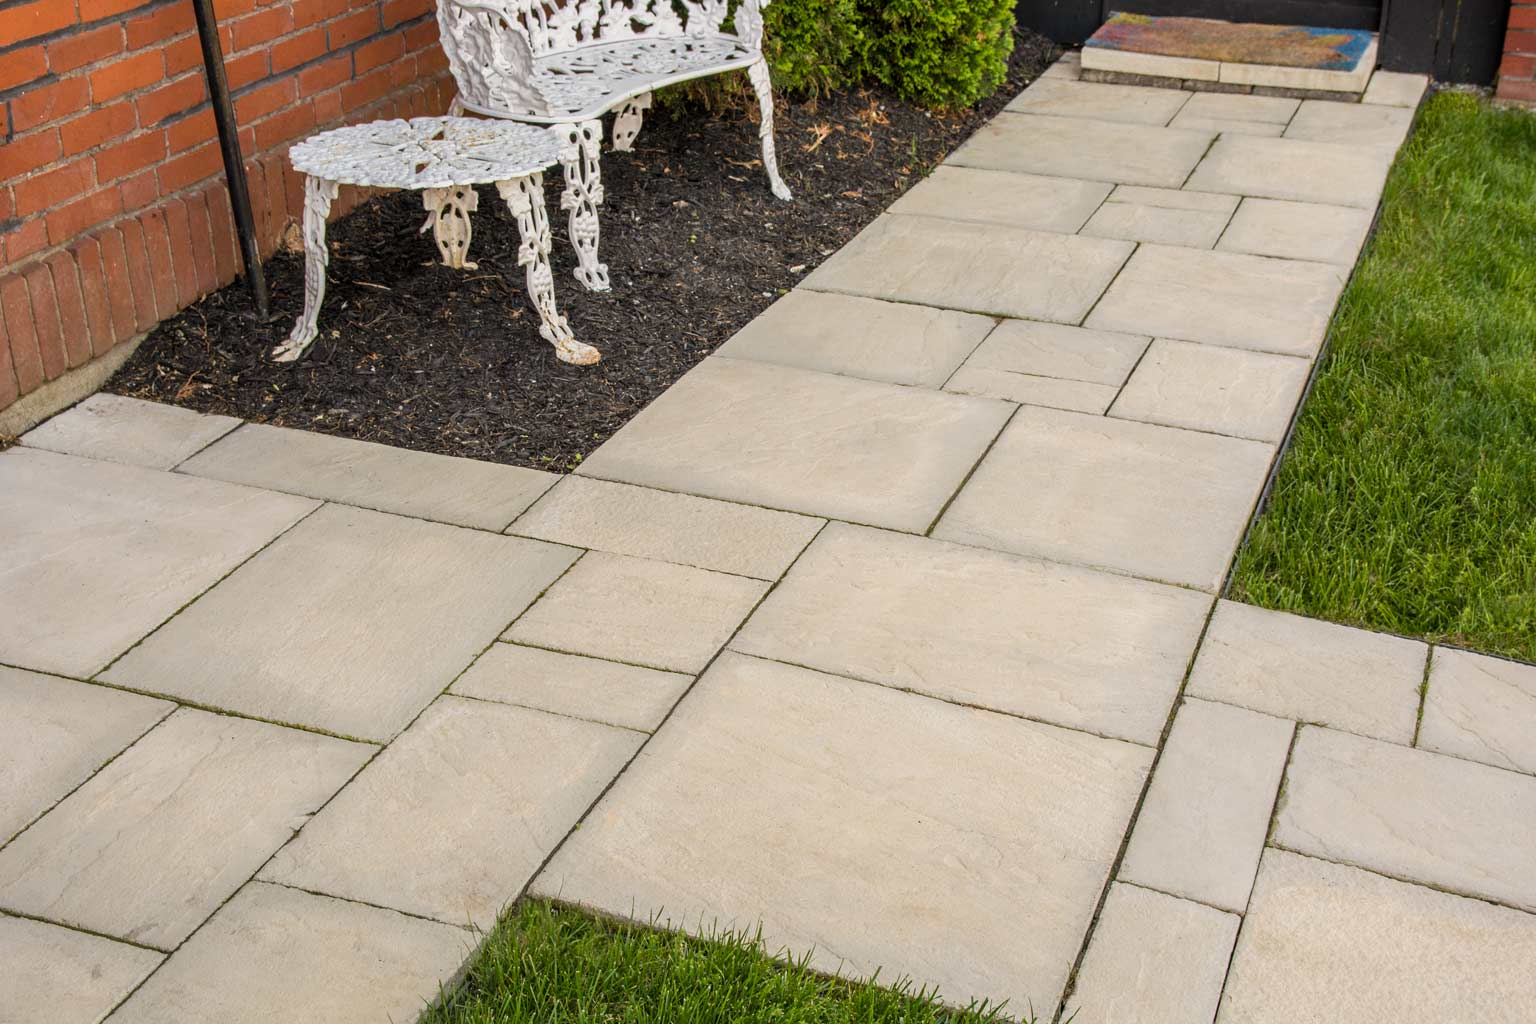 Dimensional Flagstone By Rosetta Installs Easily And Looks